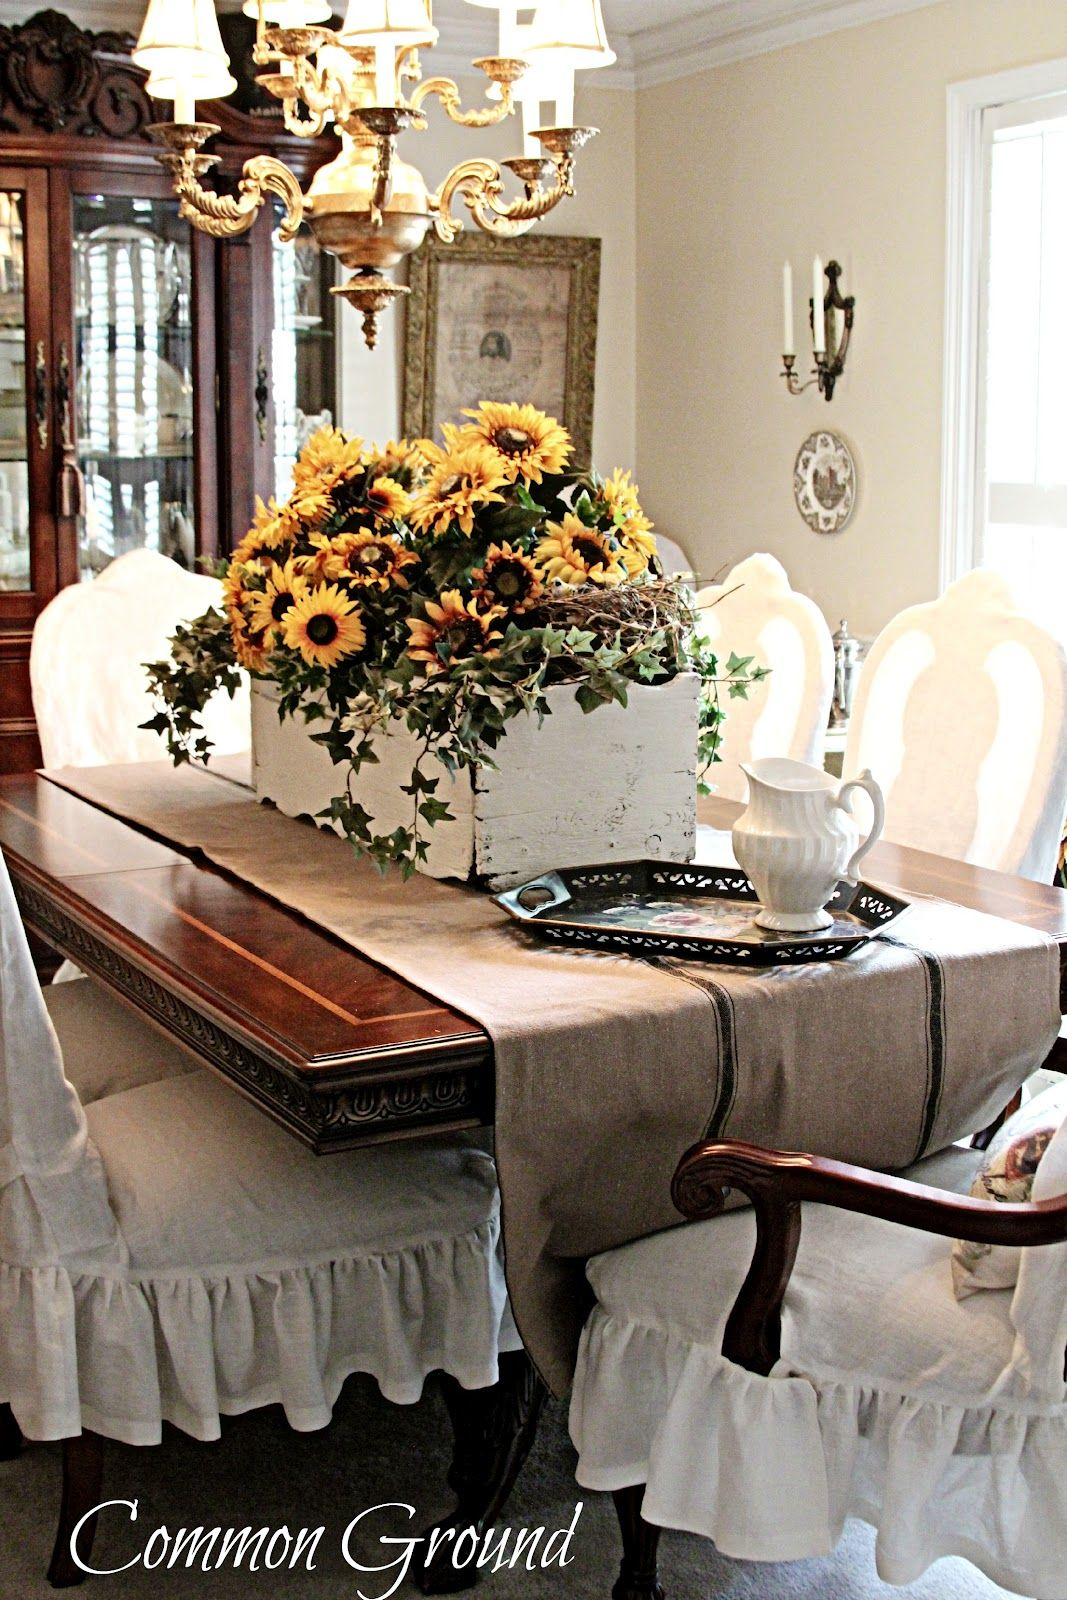 Common Ground Sunflowers Dining Room Table Centerpieces Formal Dining Table Centerpiece Traditional Dining Room Table